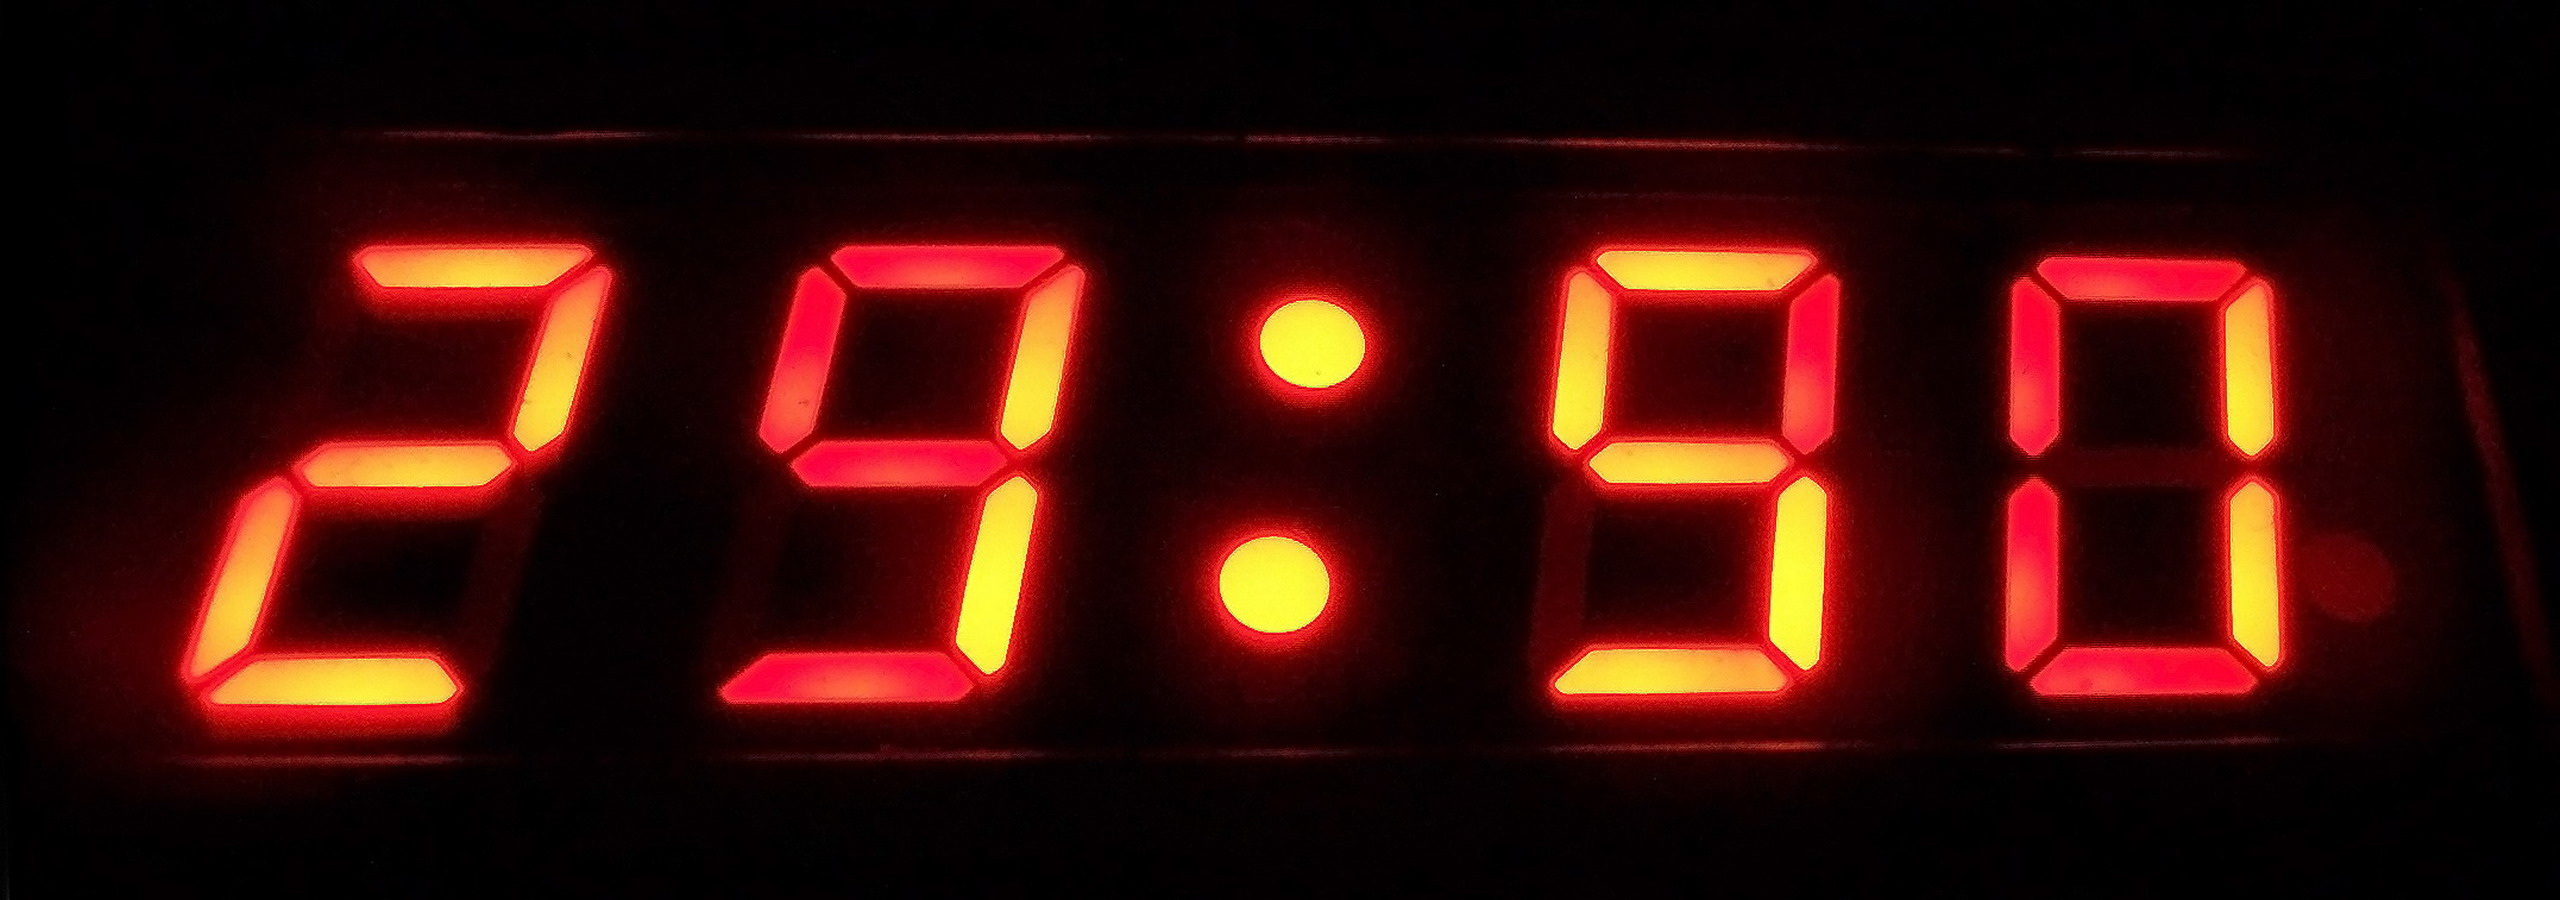 Digital clock changing numbers